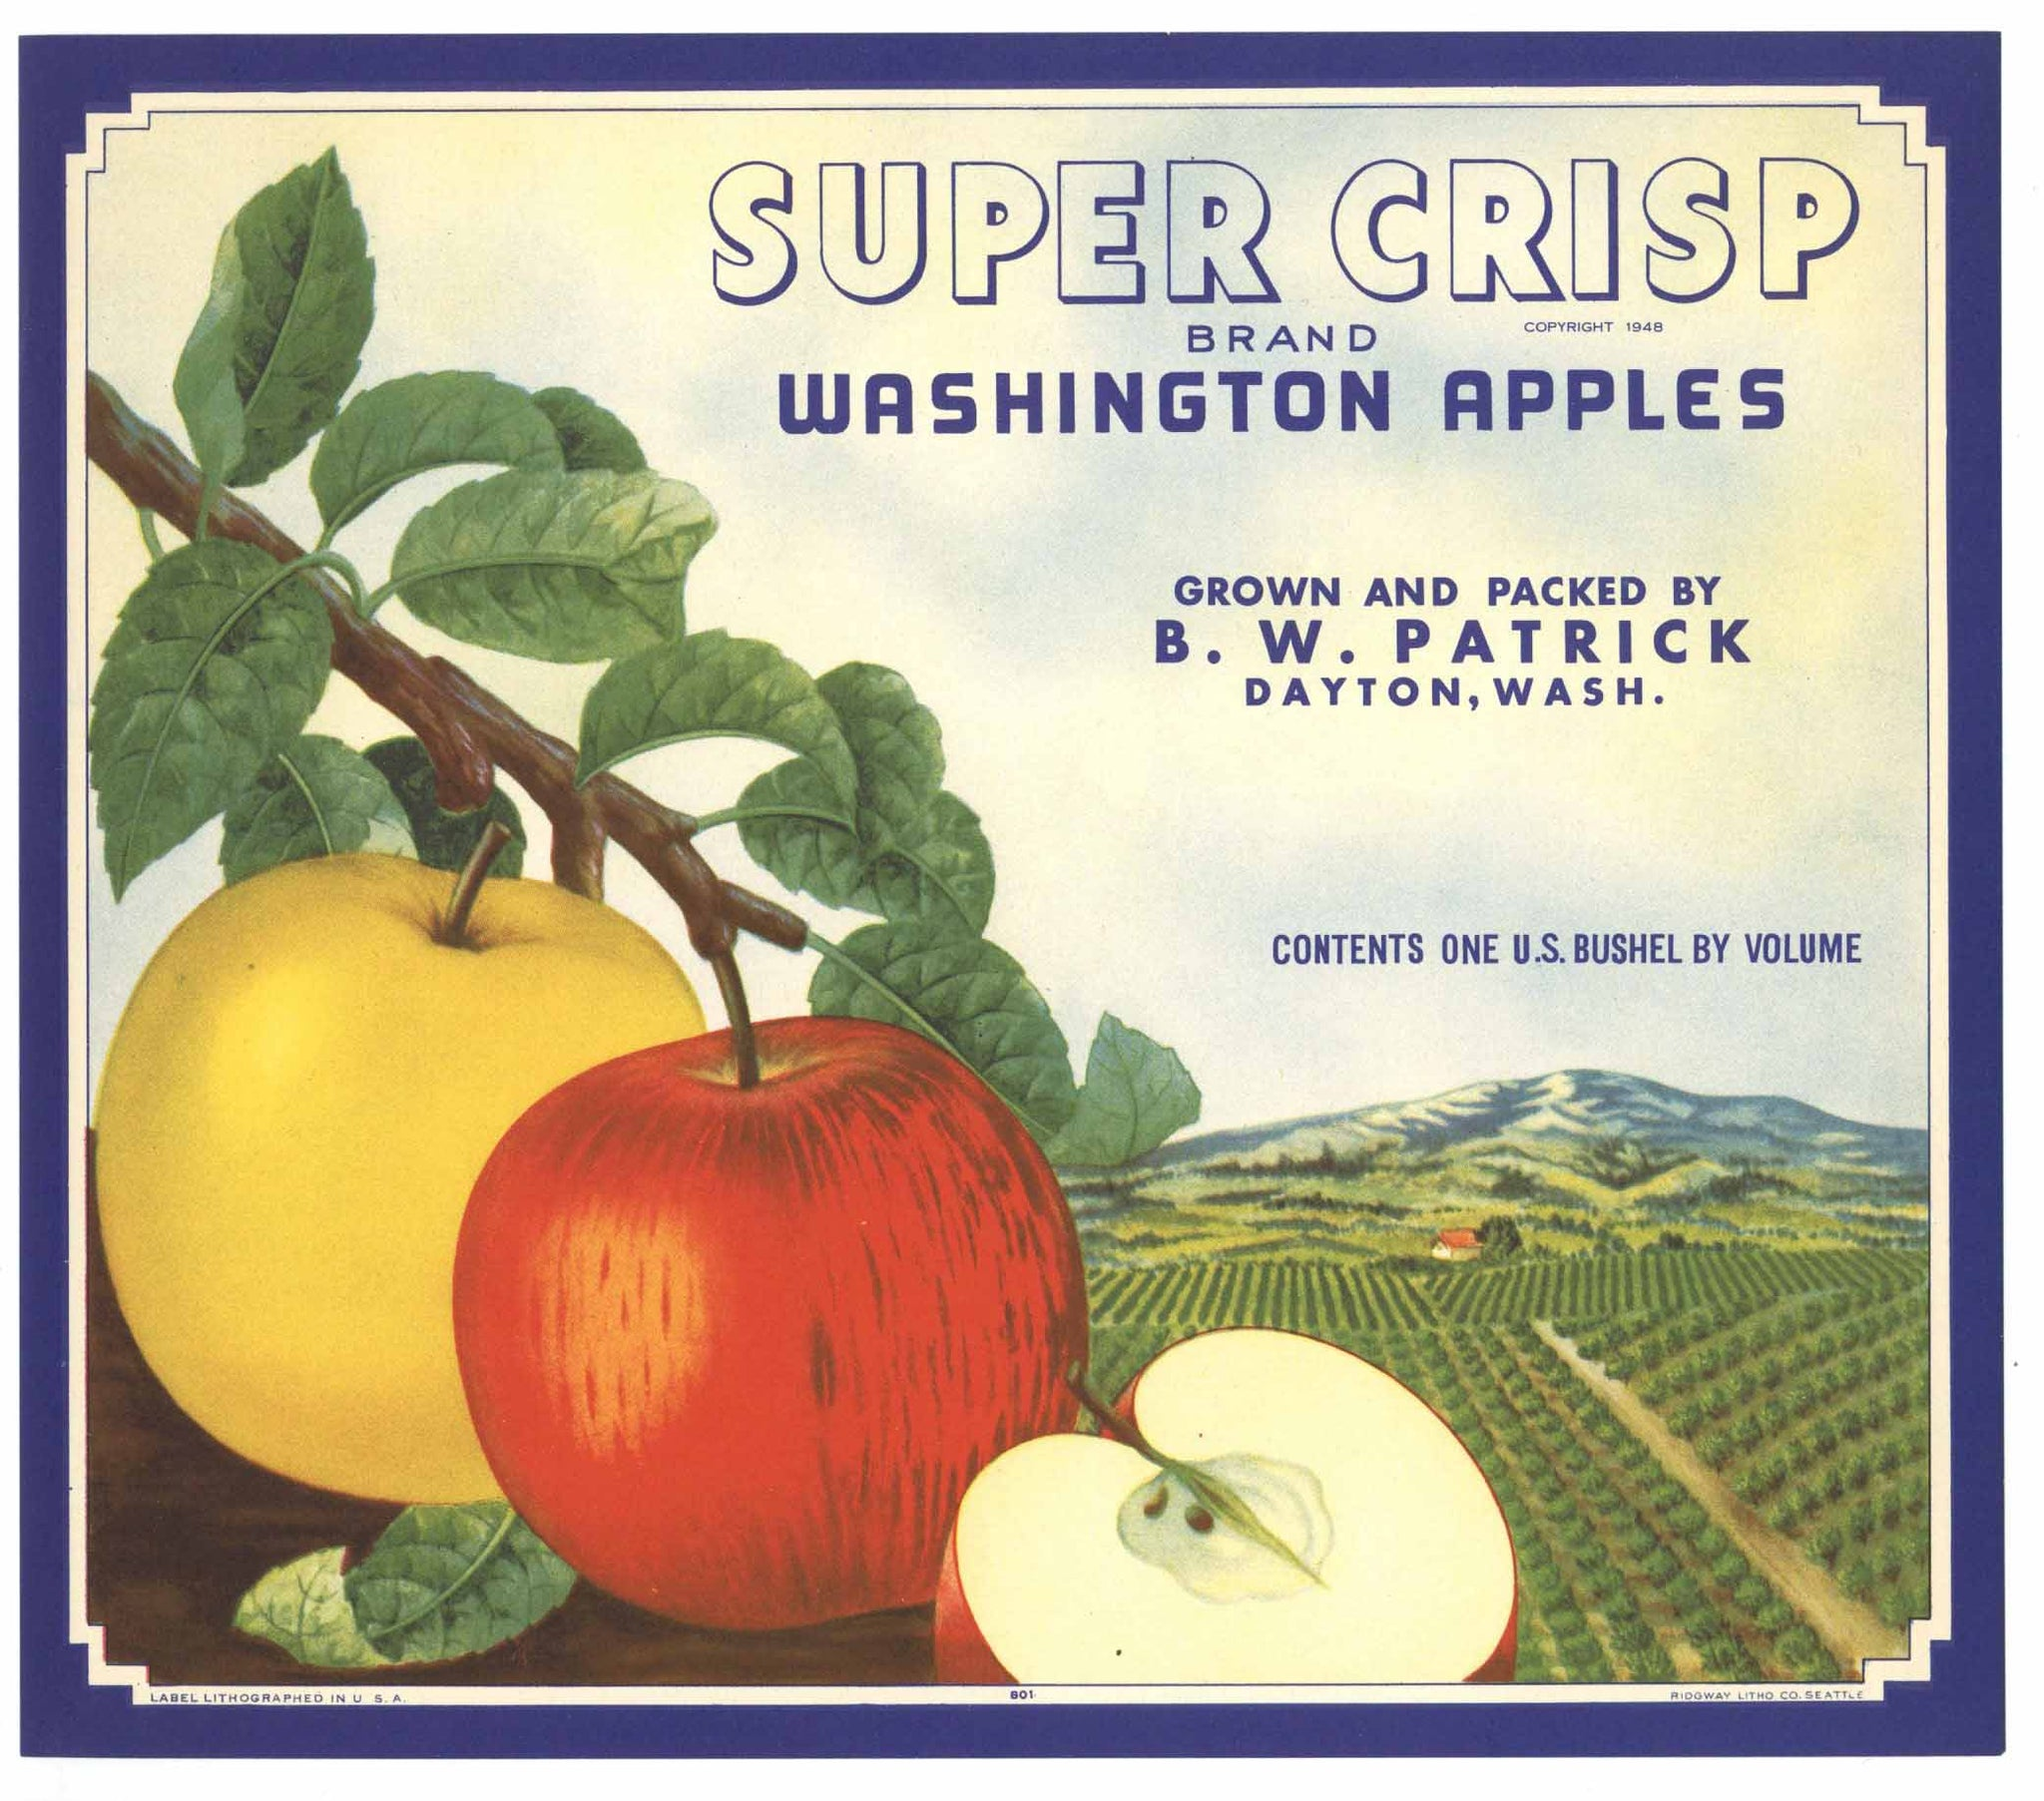 Super Crisp Brand Vintage Dayton Washington Apple Crate Label